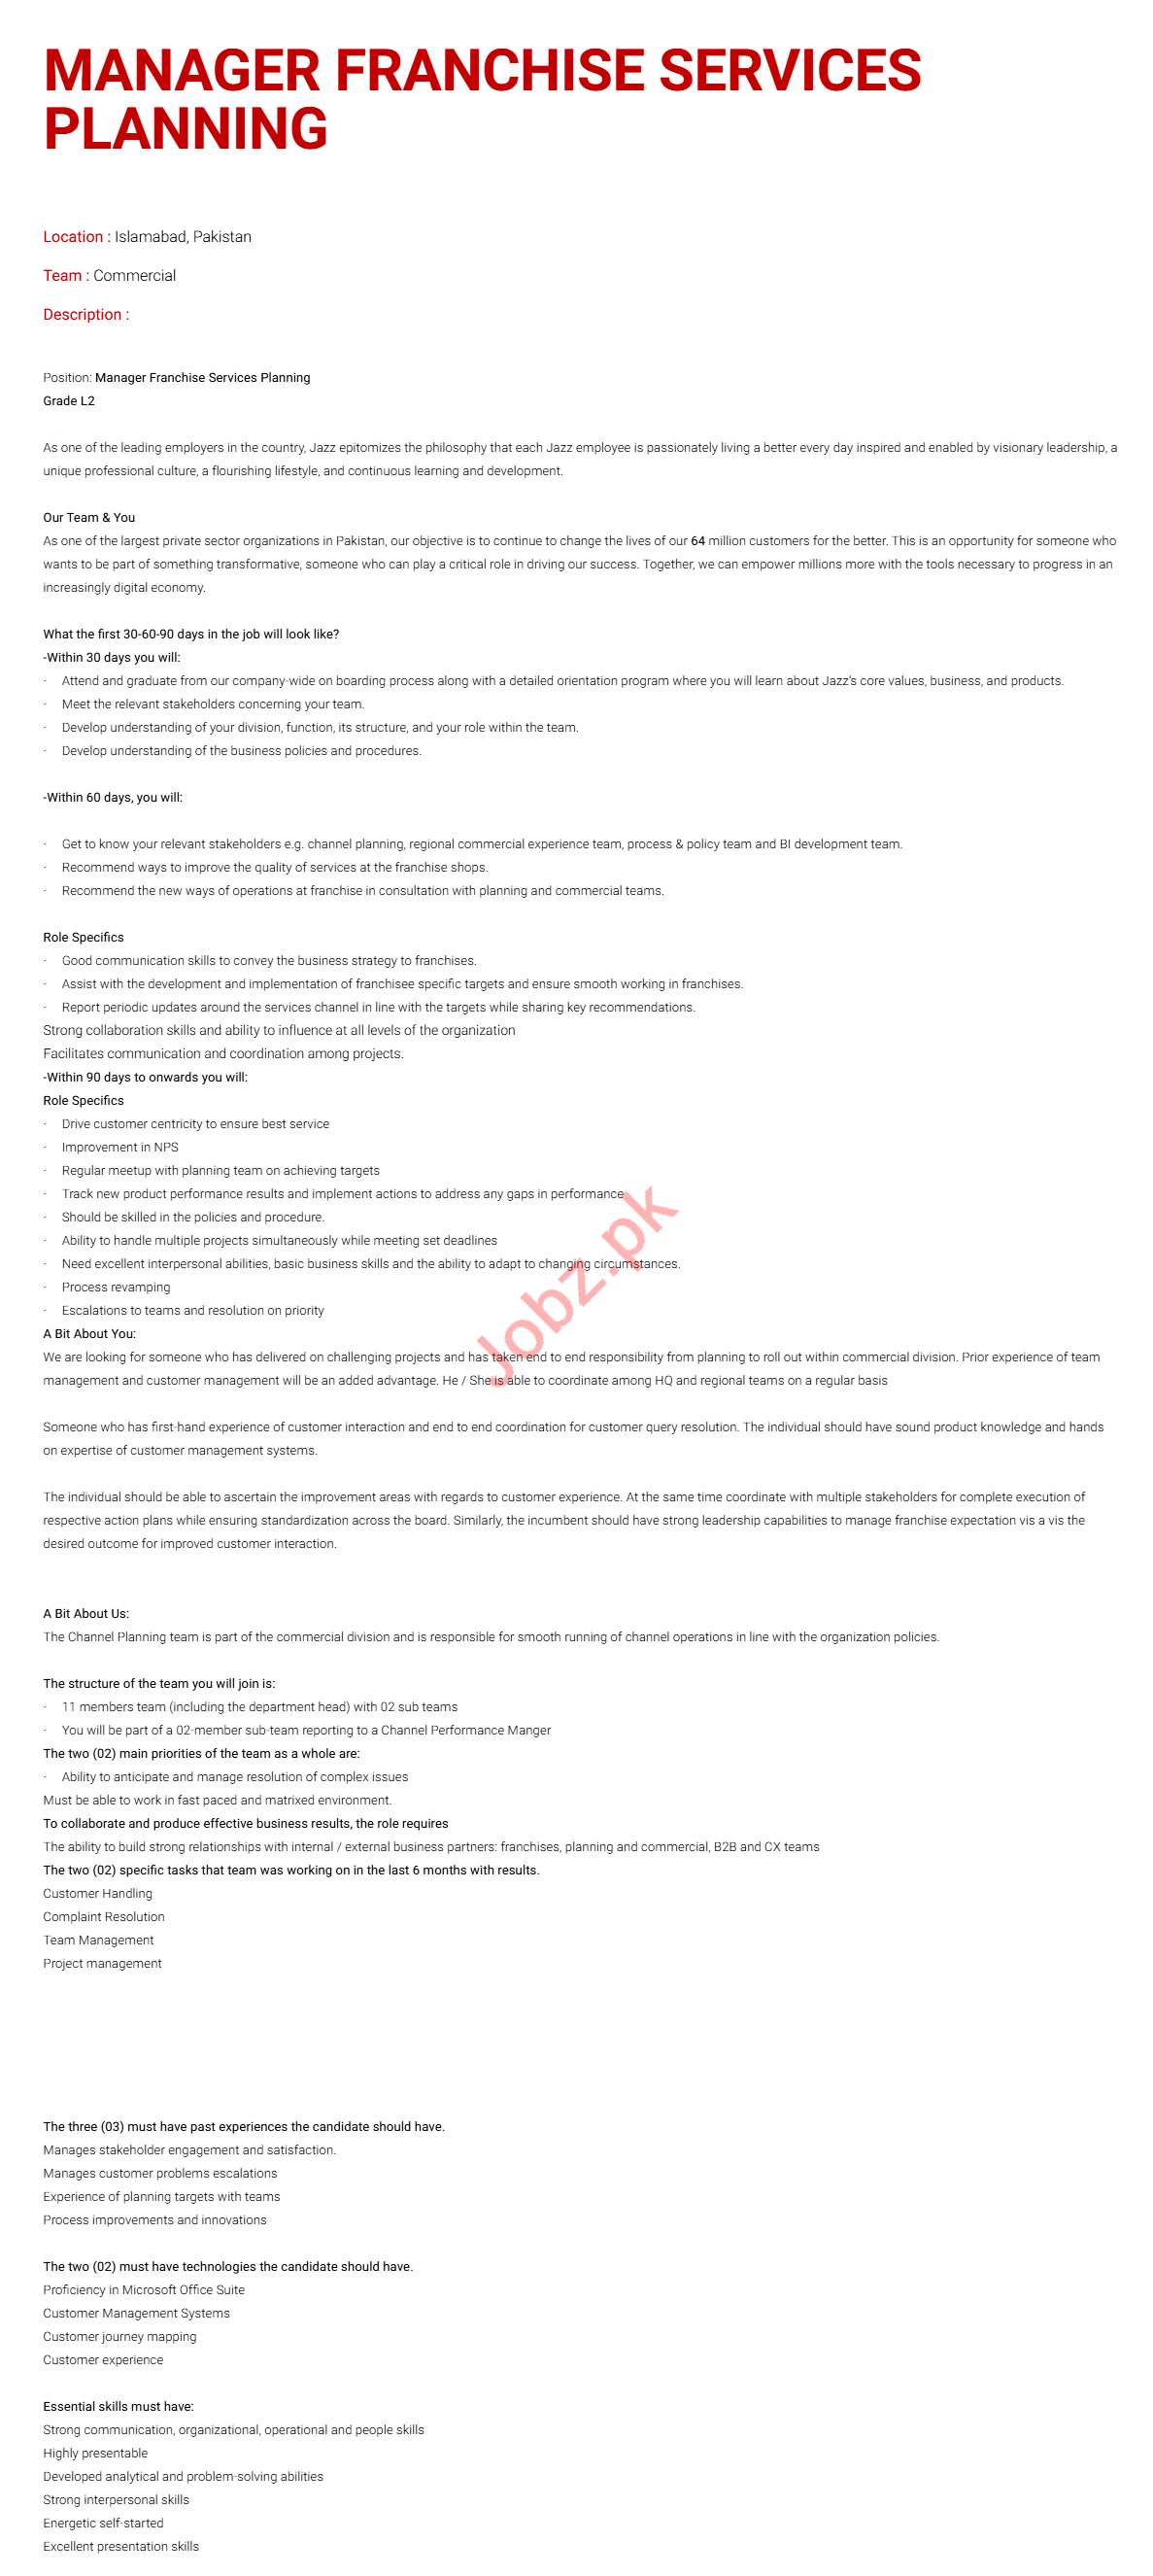 Manager Franchise Services Planning & Manager Jobs 2021